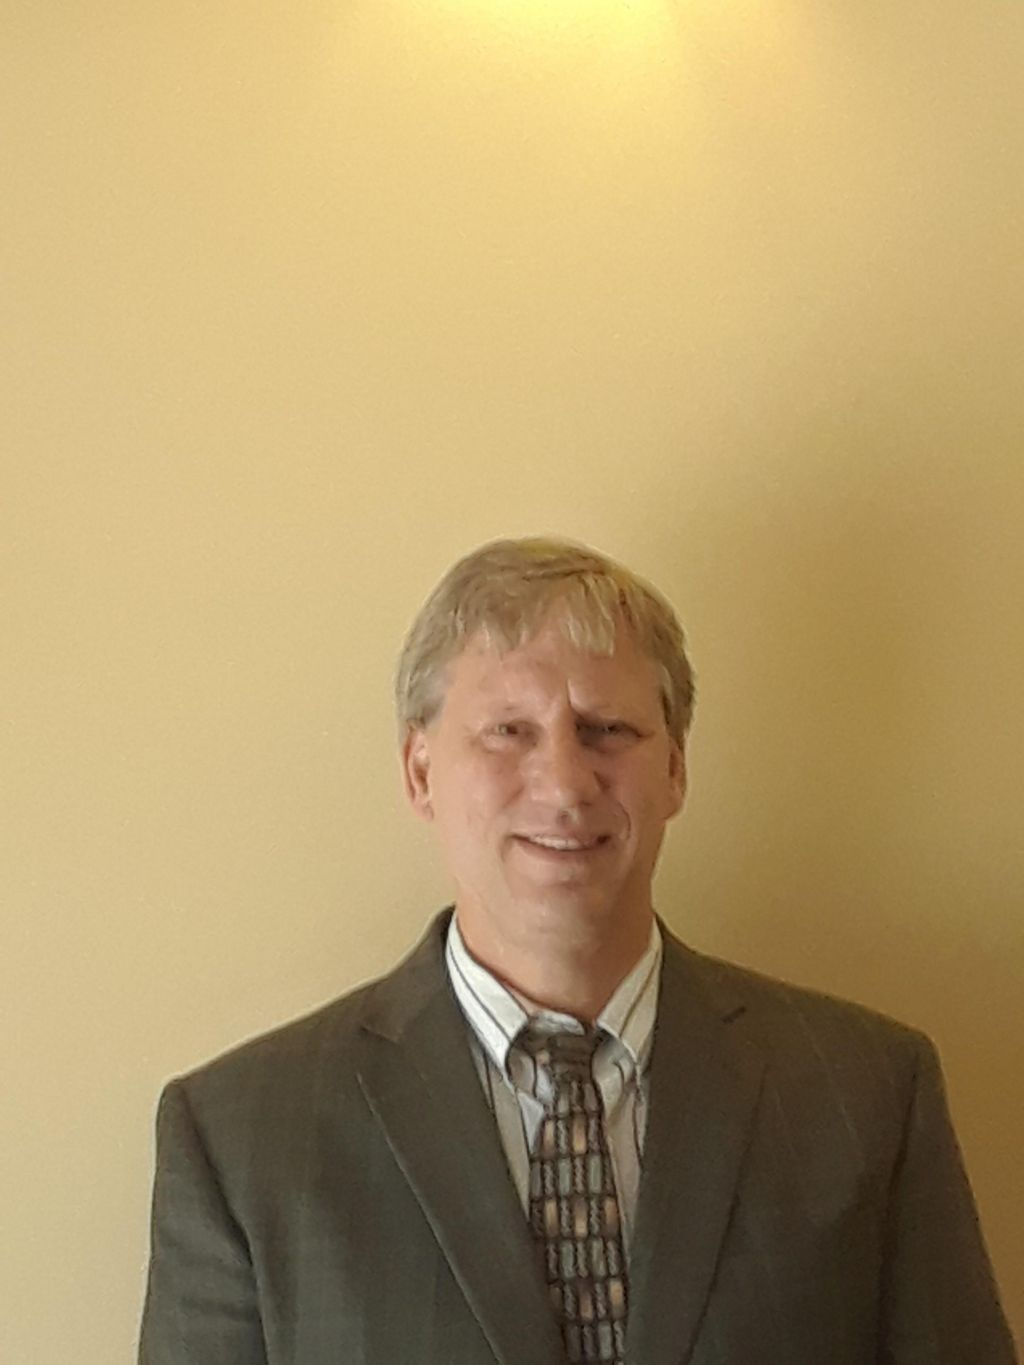 David A. Mathies, Attorney at Law